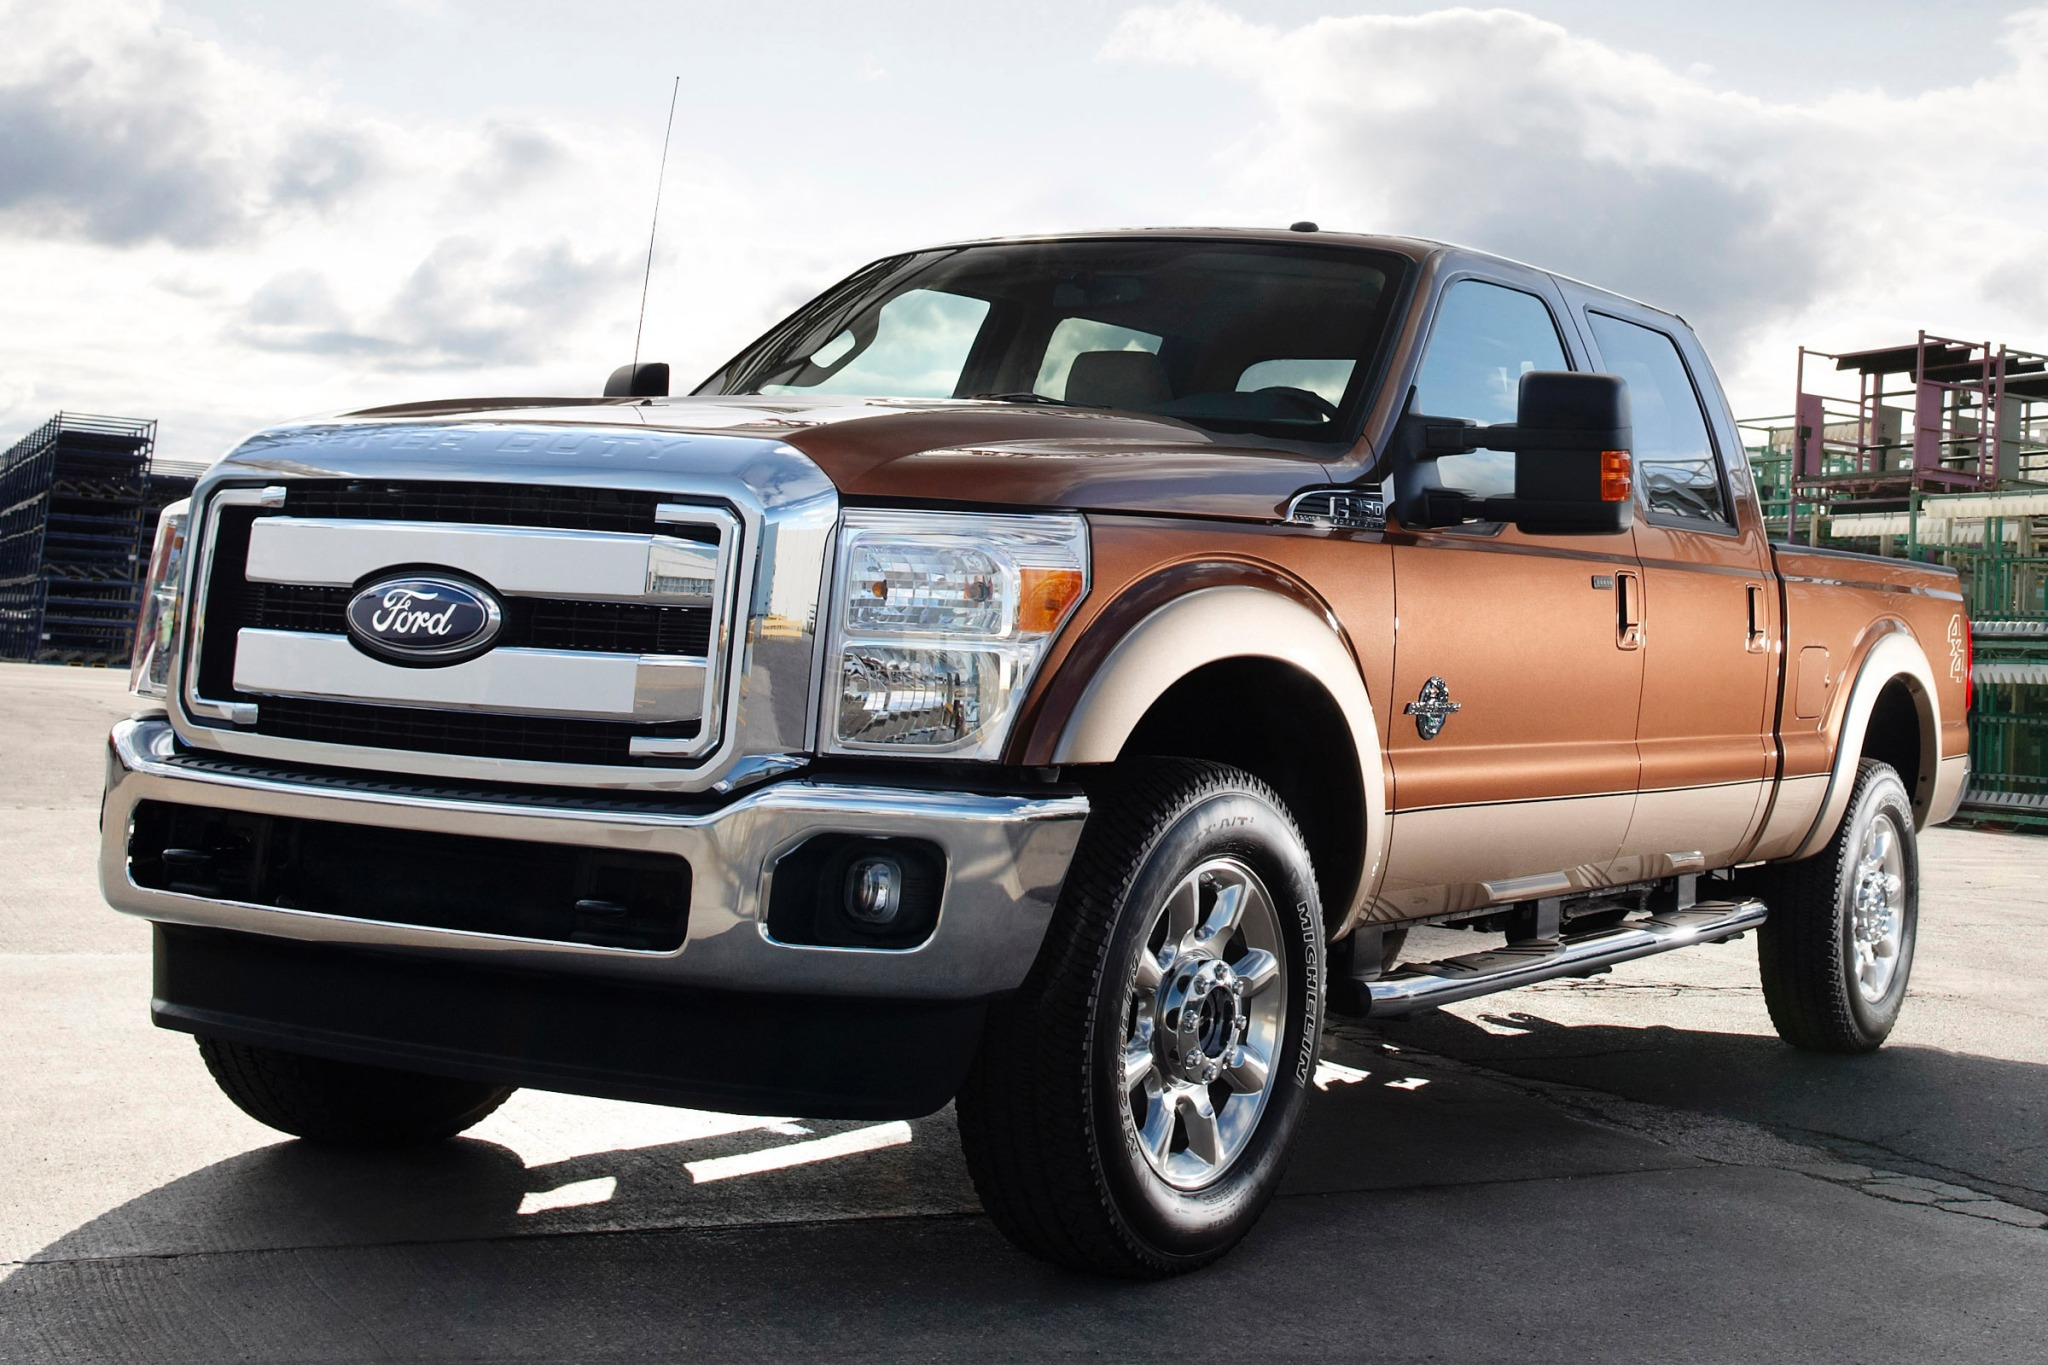 2014 Ford F-250 Super Dut interior #6